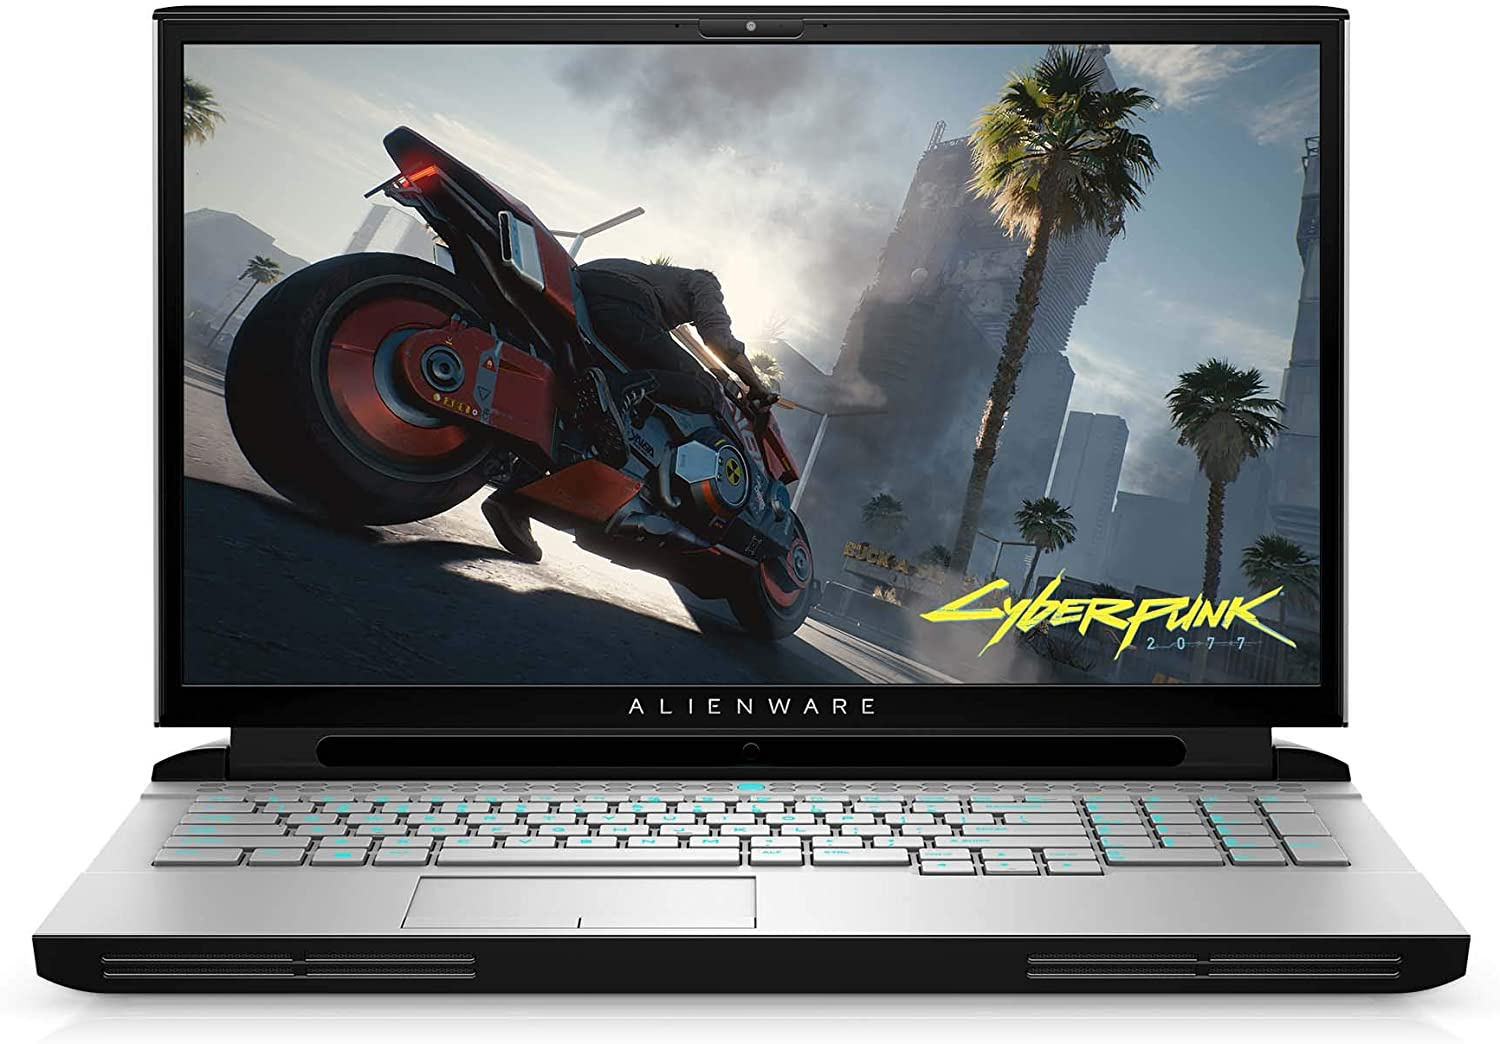 "New Alienware Area 51M Gaming Laptop, 17.3"" 300hz 3ms FHD Display, Intel Core i7-10700K, Nvidia GeForce RTX 2070 Super 8GB GDDR6, 1TB SSD, 16GB RAM, Lunar Light"